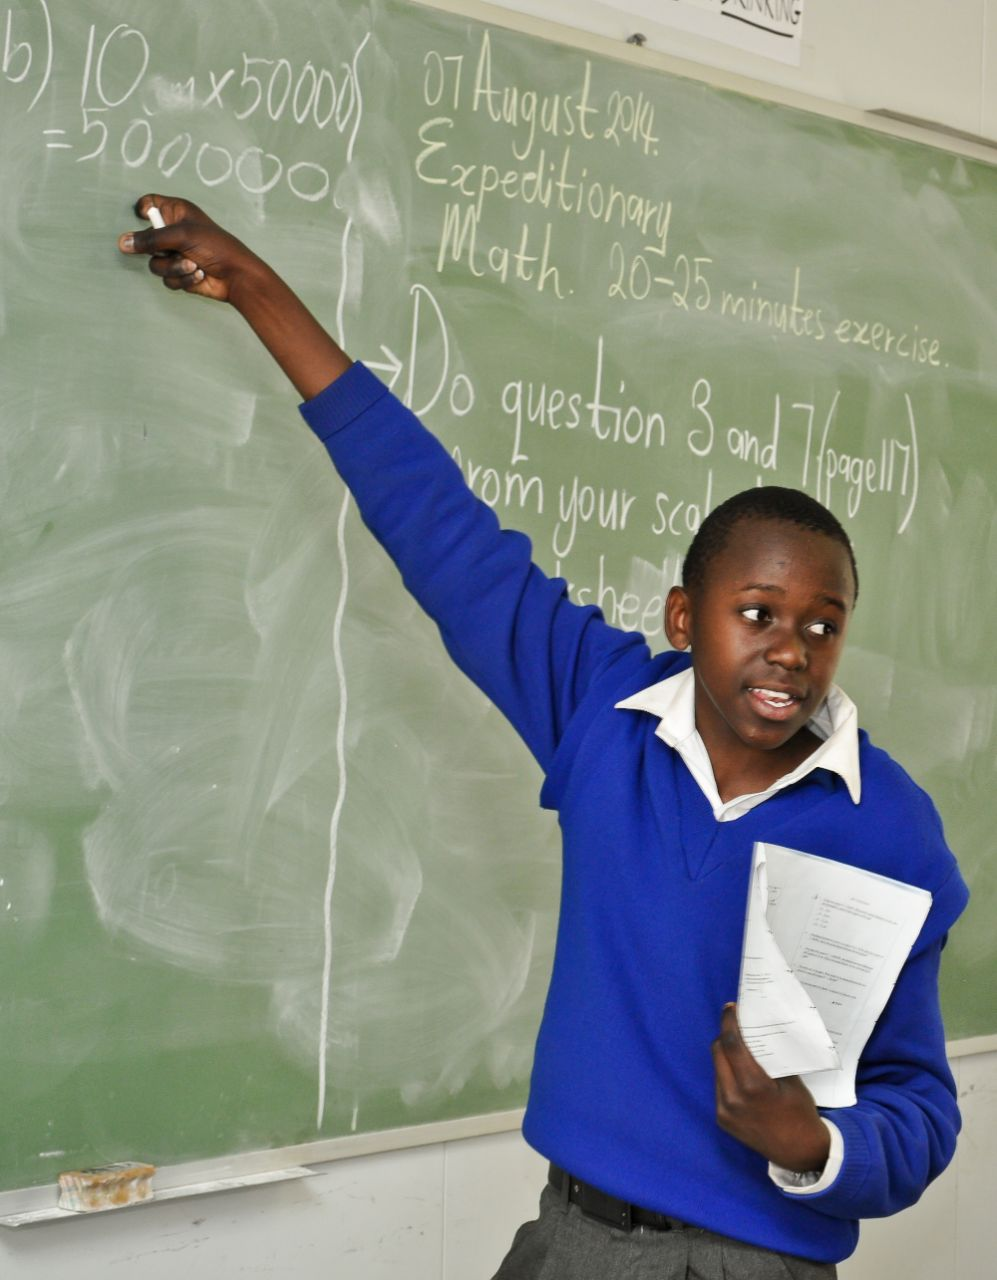 African Scool of Excellence Photos 731